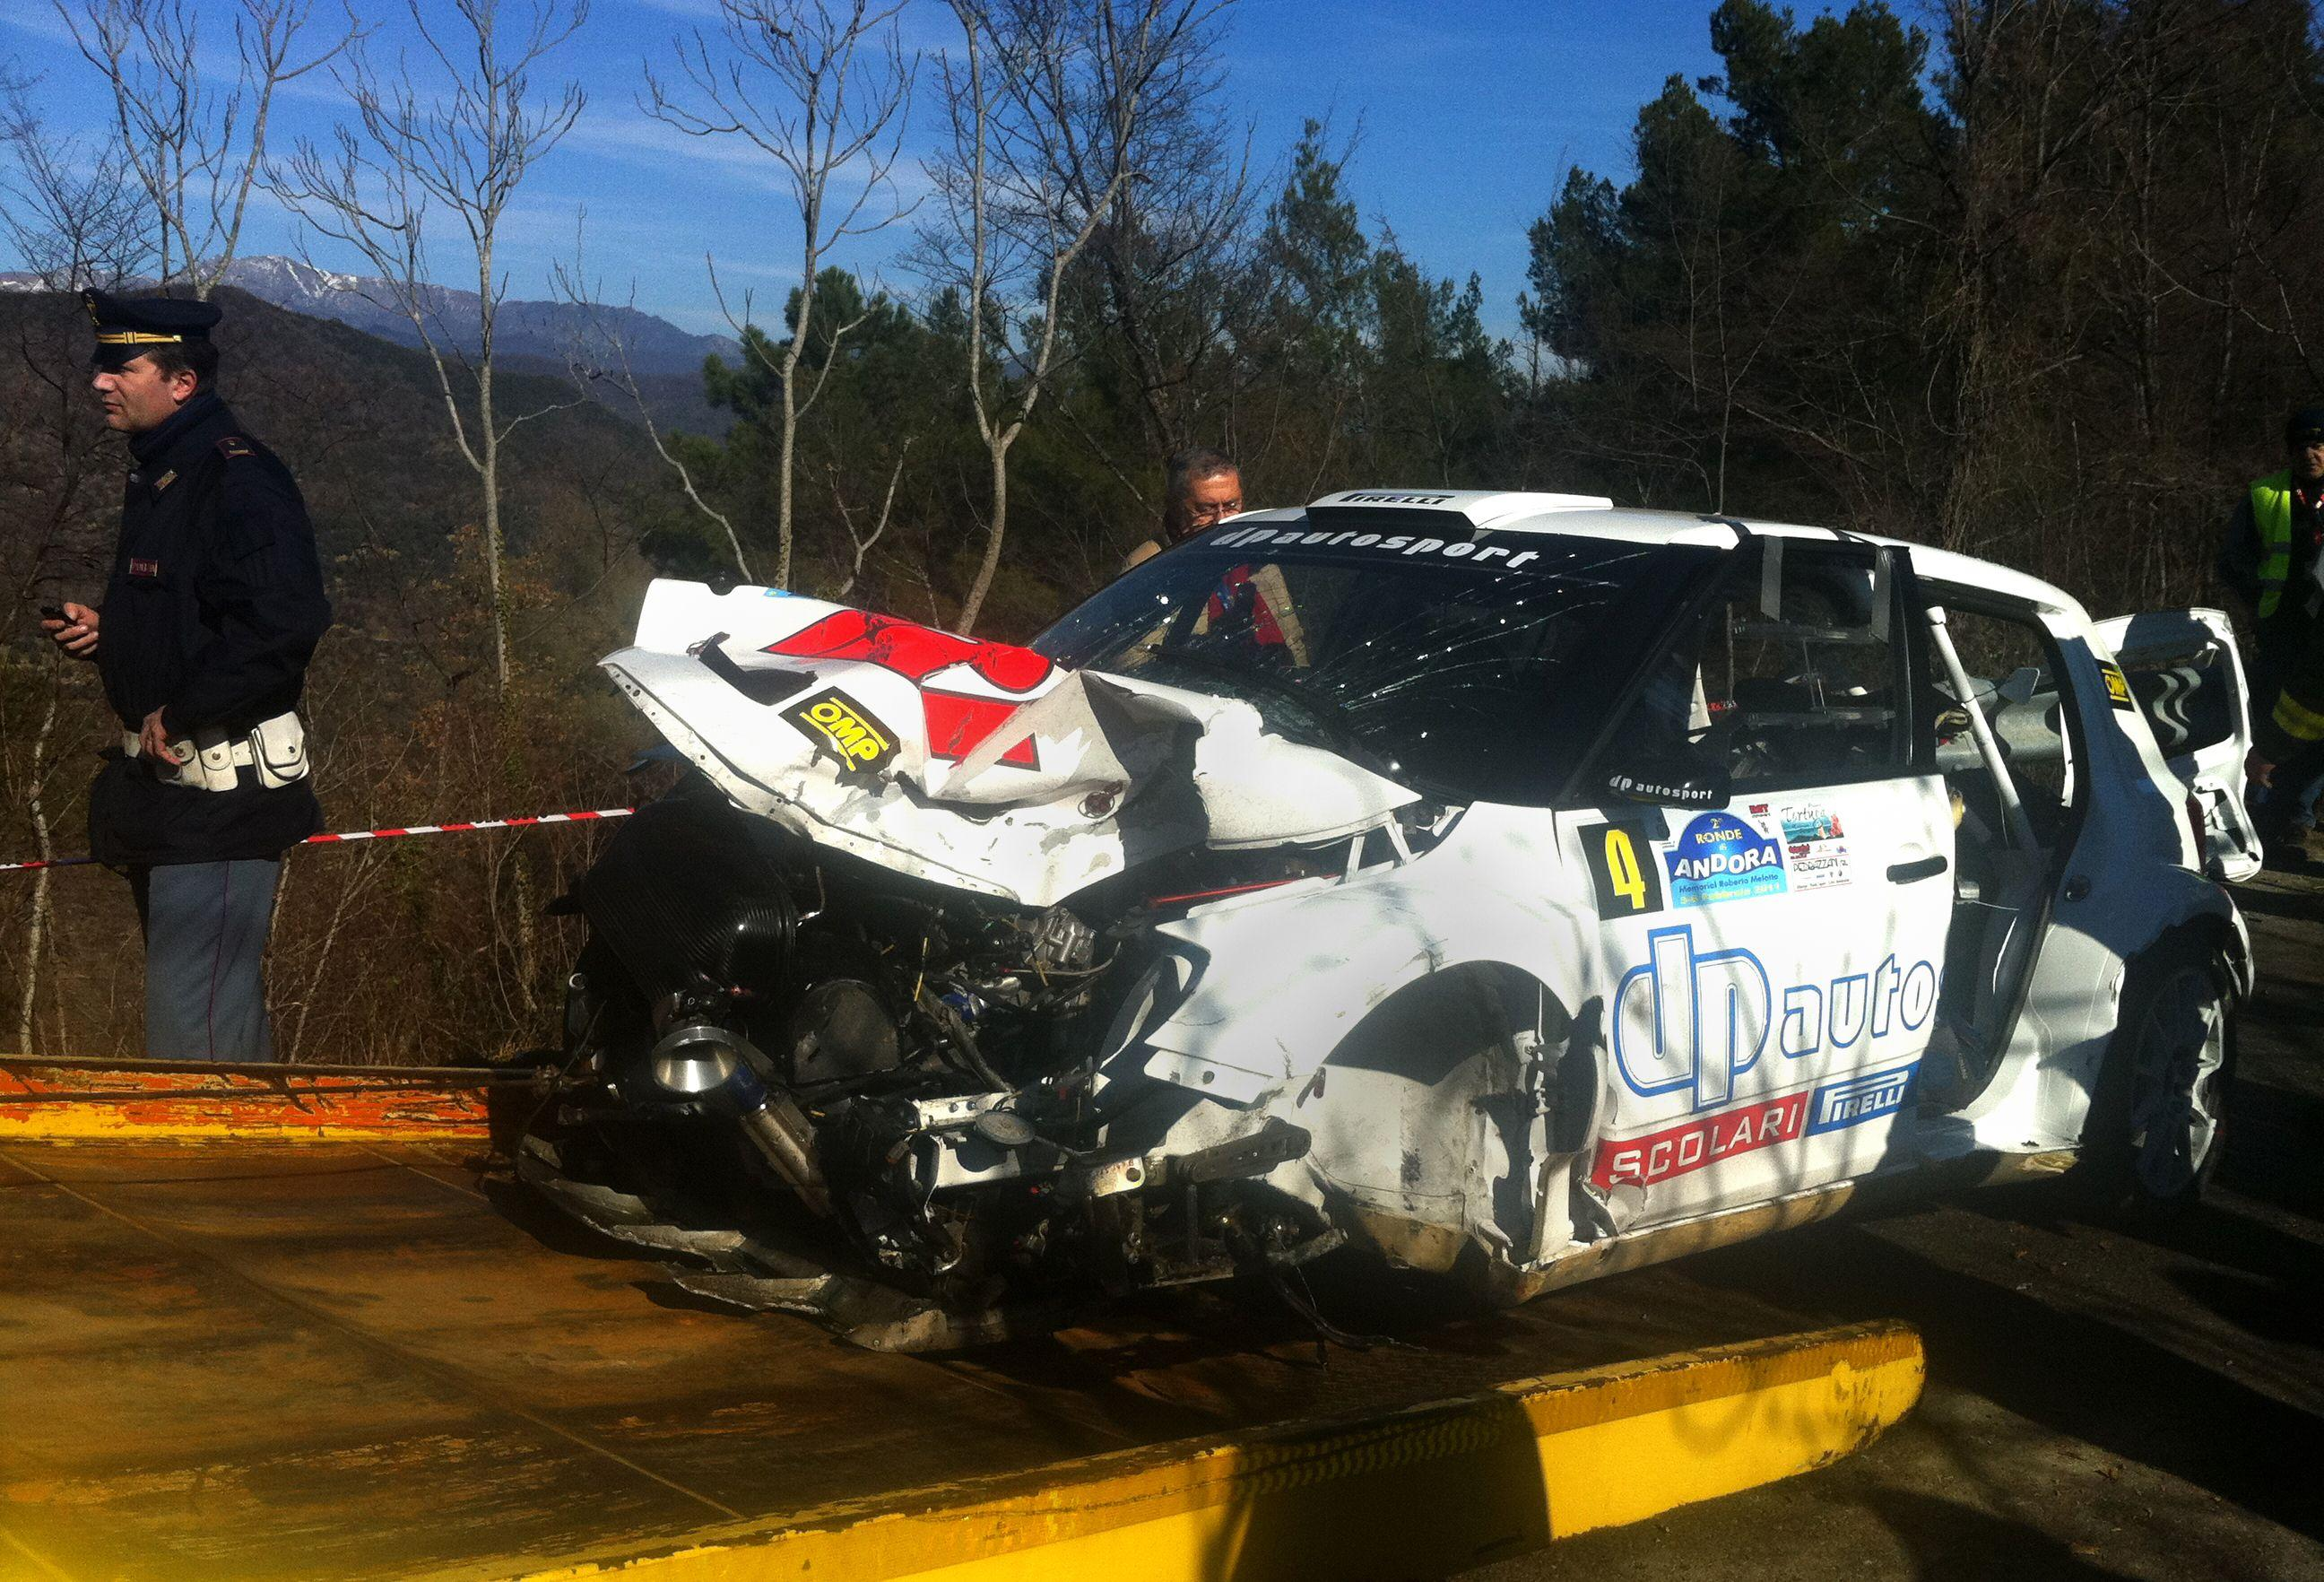 The Polish racer almost lost his life in 2011 following a horrendous crash during a rally race